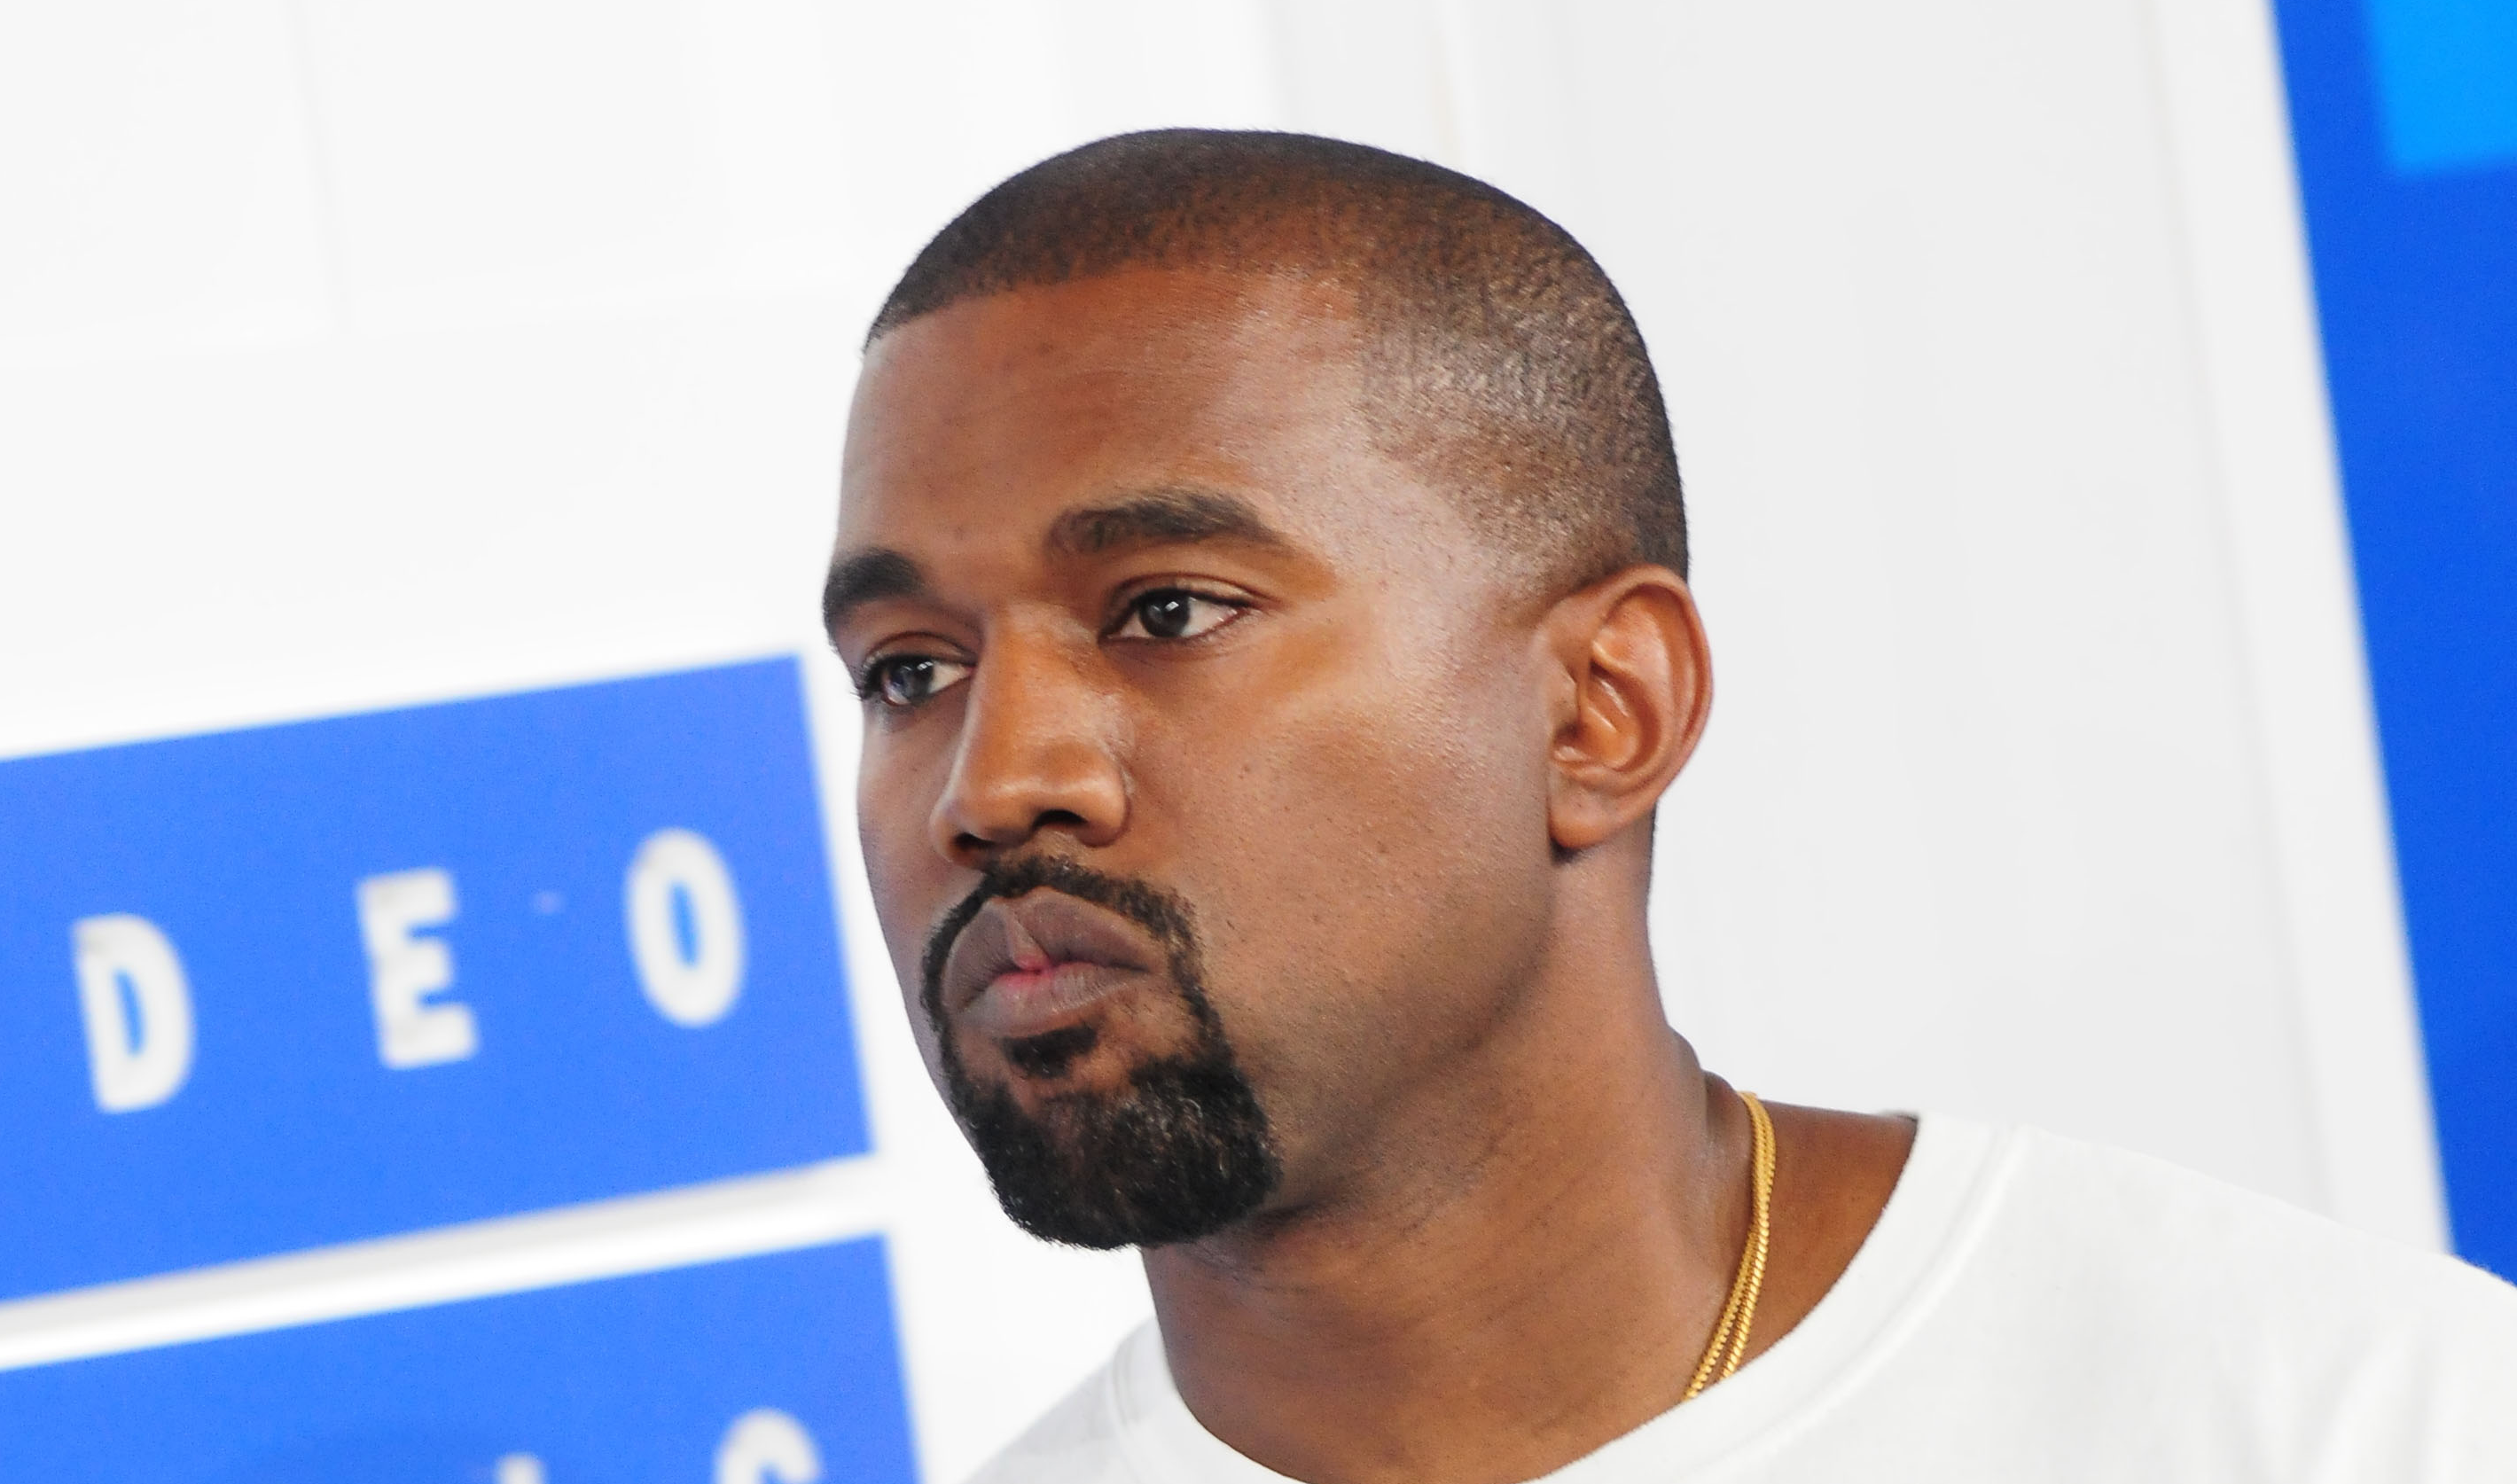 Kanye West for President in 2020? Twitter Seems to Think So